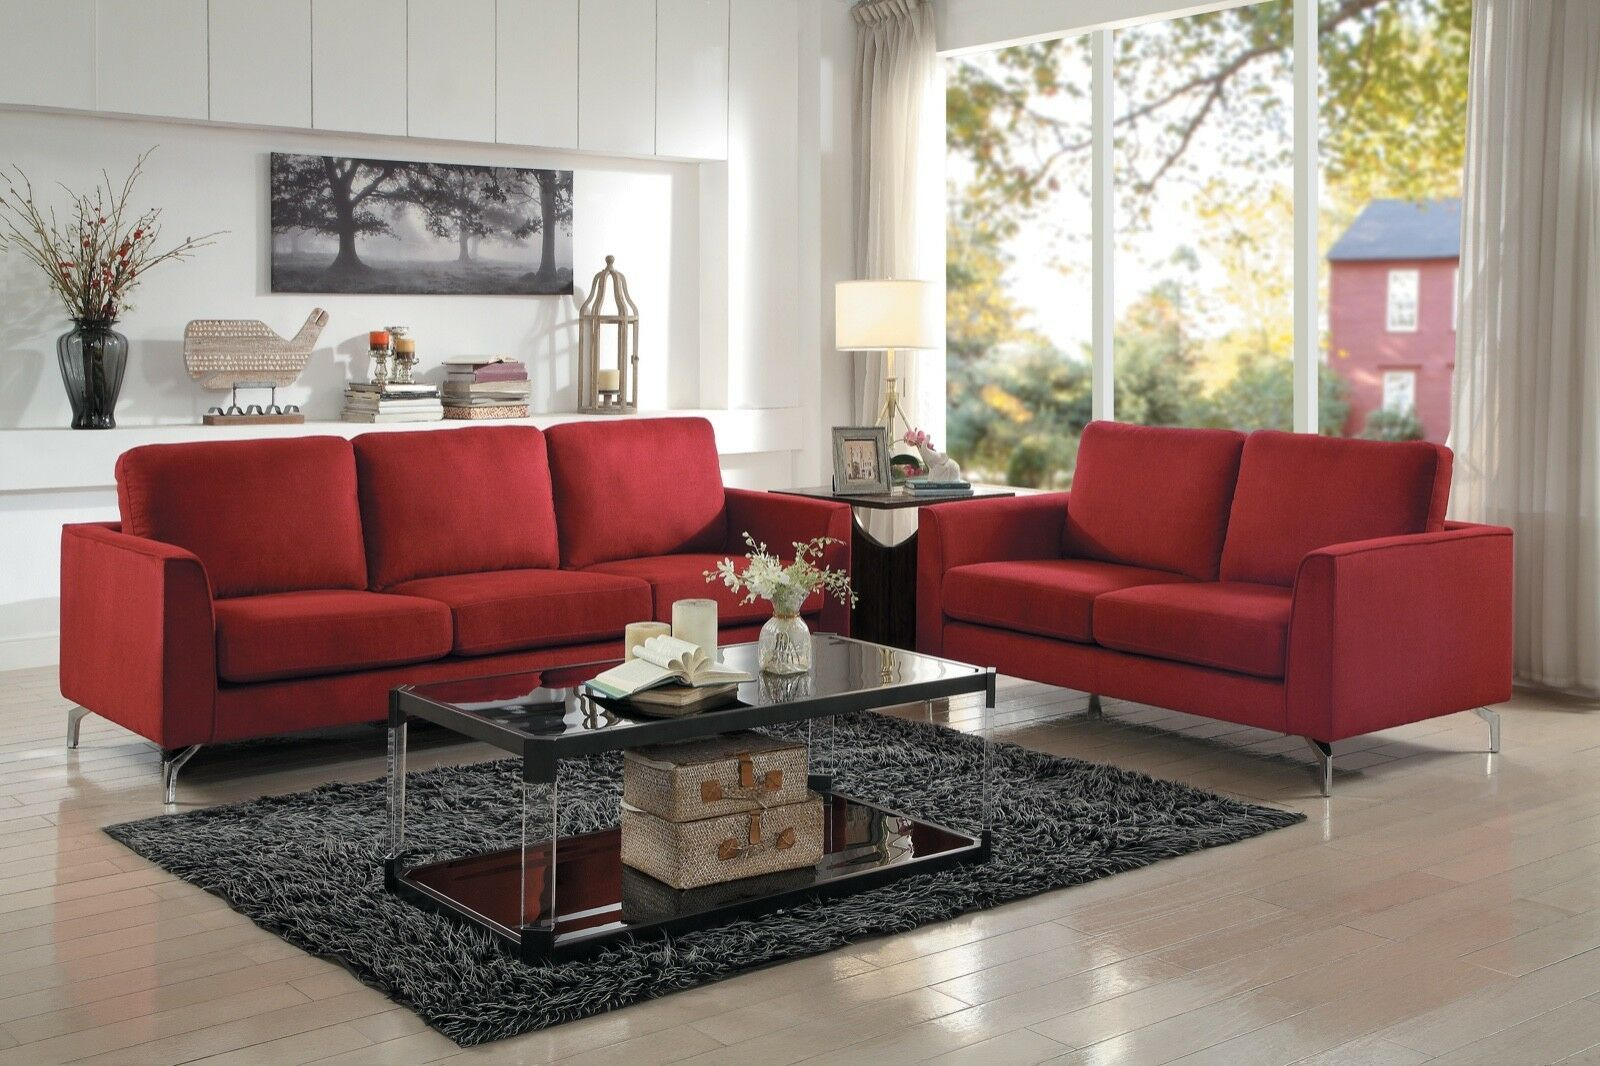 CONTEMPORARY RED SOFA COUCH & LOVESEAT LIVING ROOM FURNITURE ...